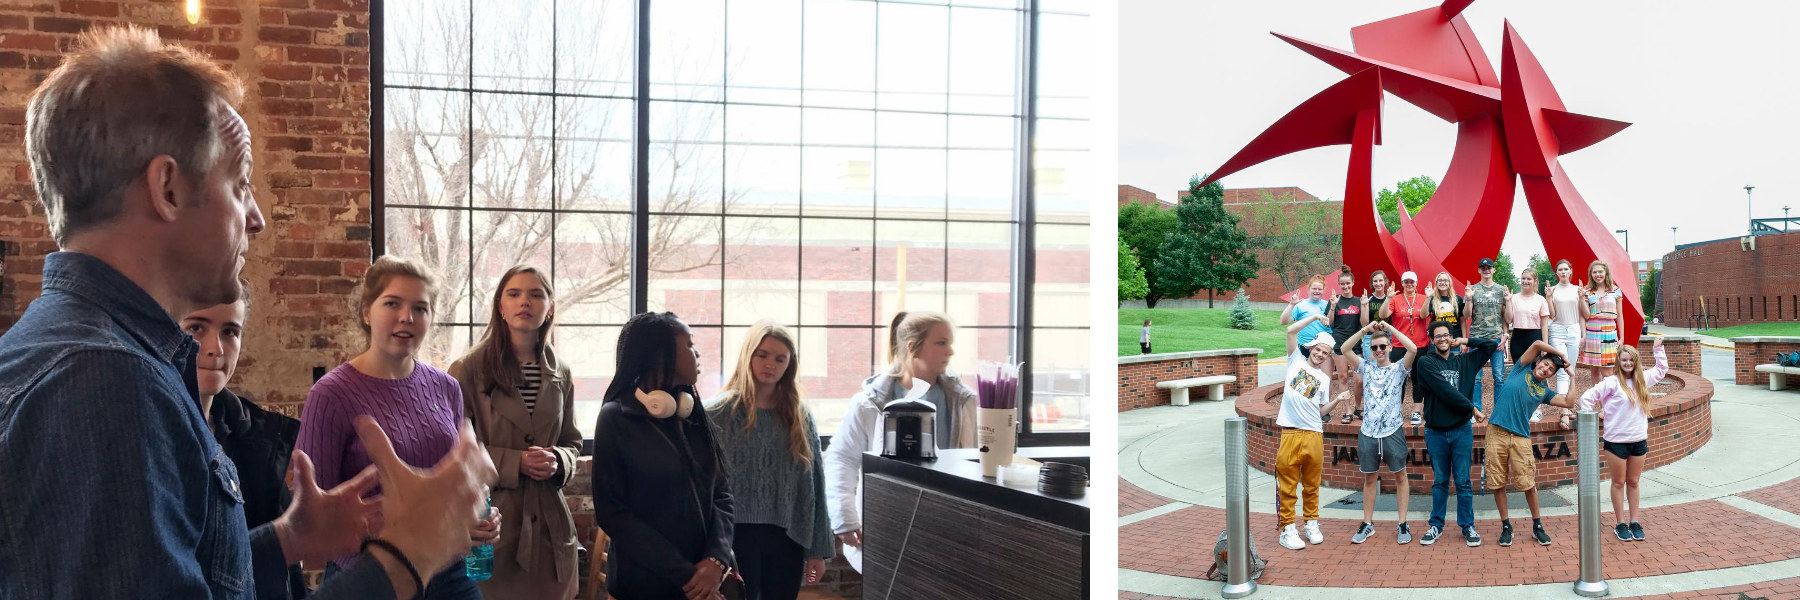 on left, advisor talking to students a Heinie Brother's Coffee on group visit. on right, students spelling cards in front of school of business